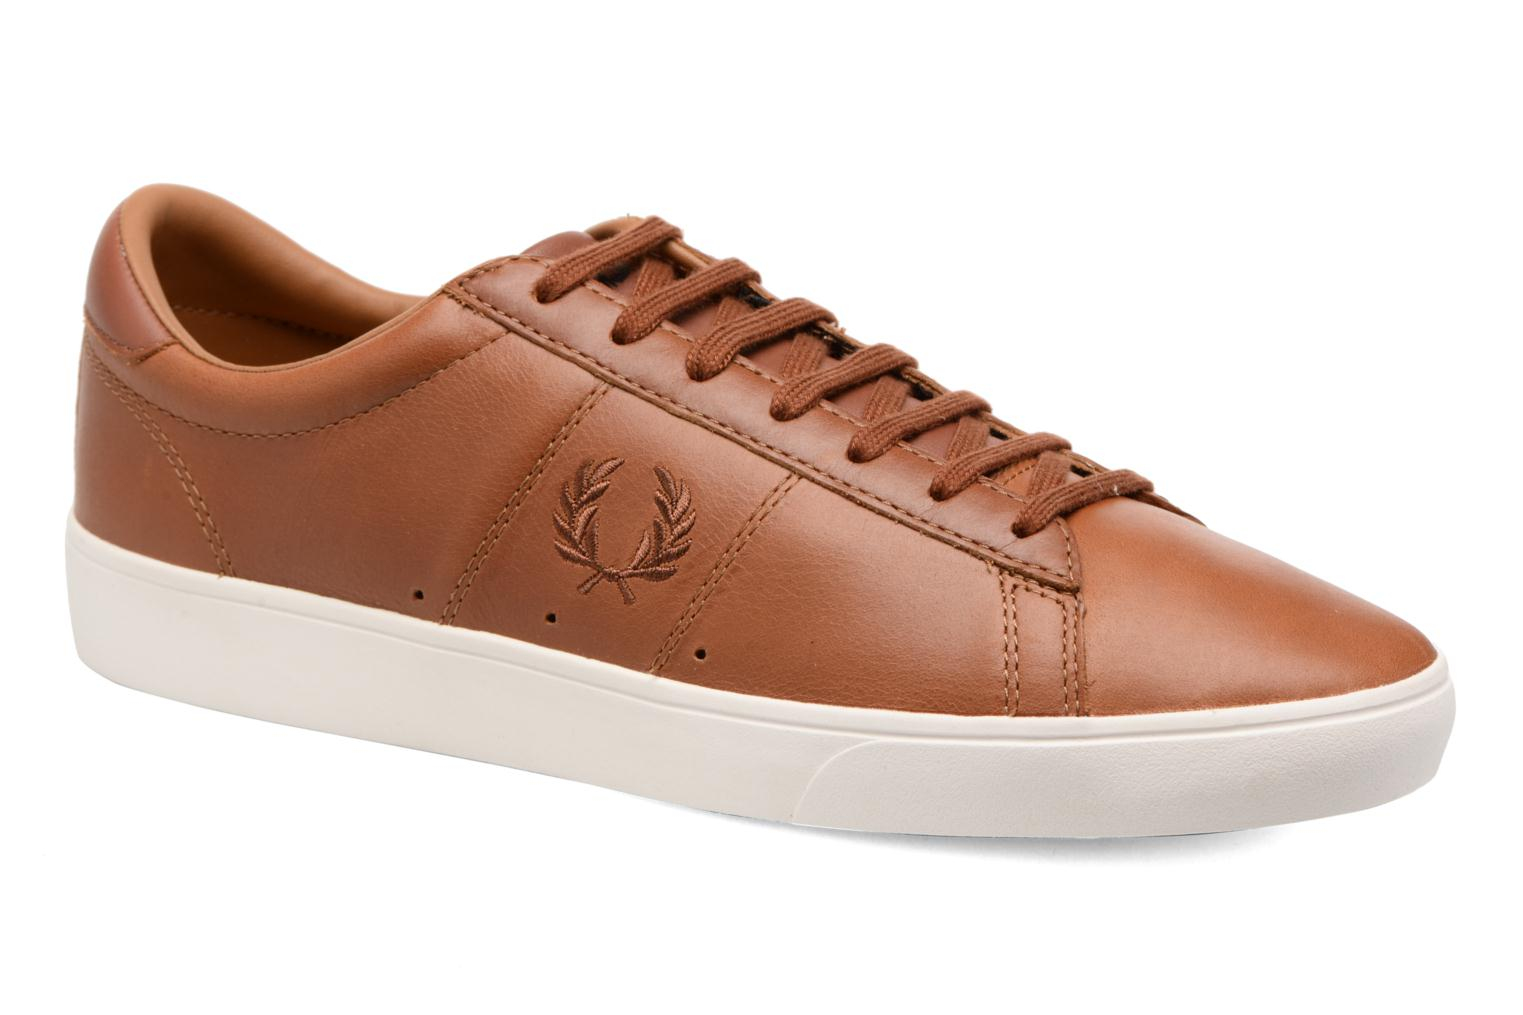 Chaussures Fred Perry Spencer marron Fashion homme